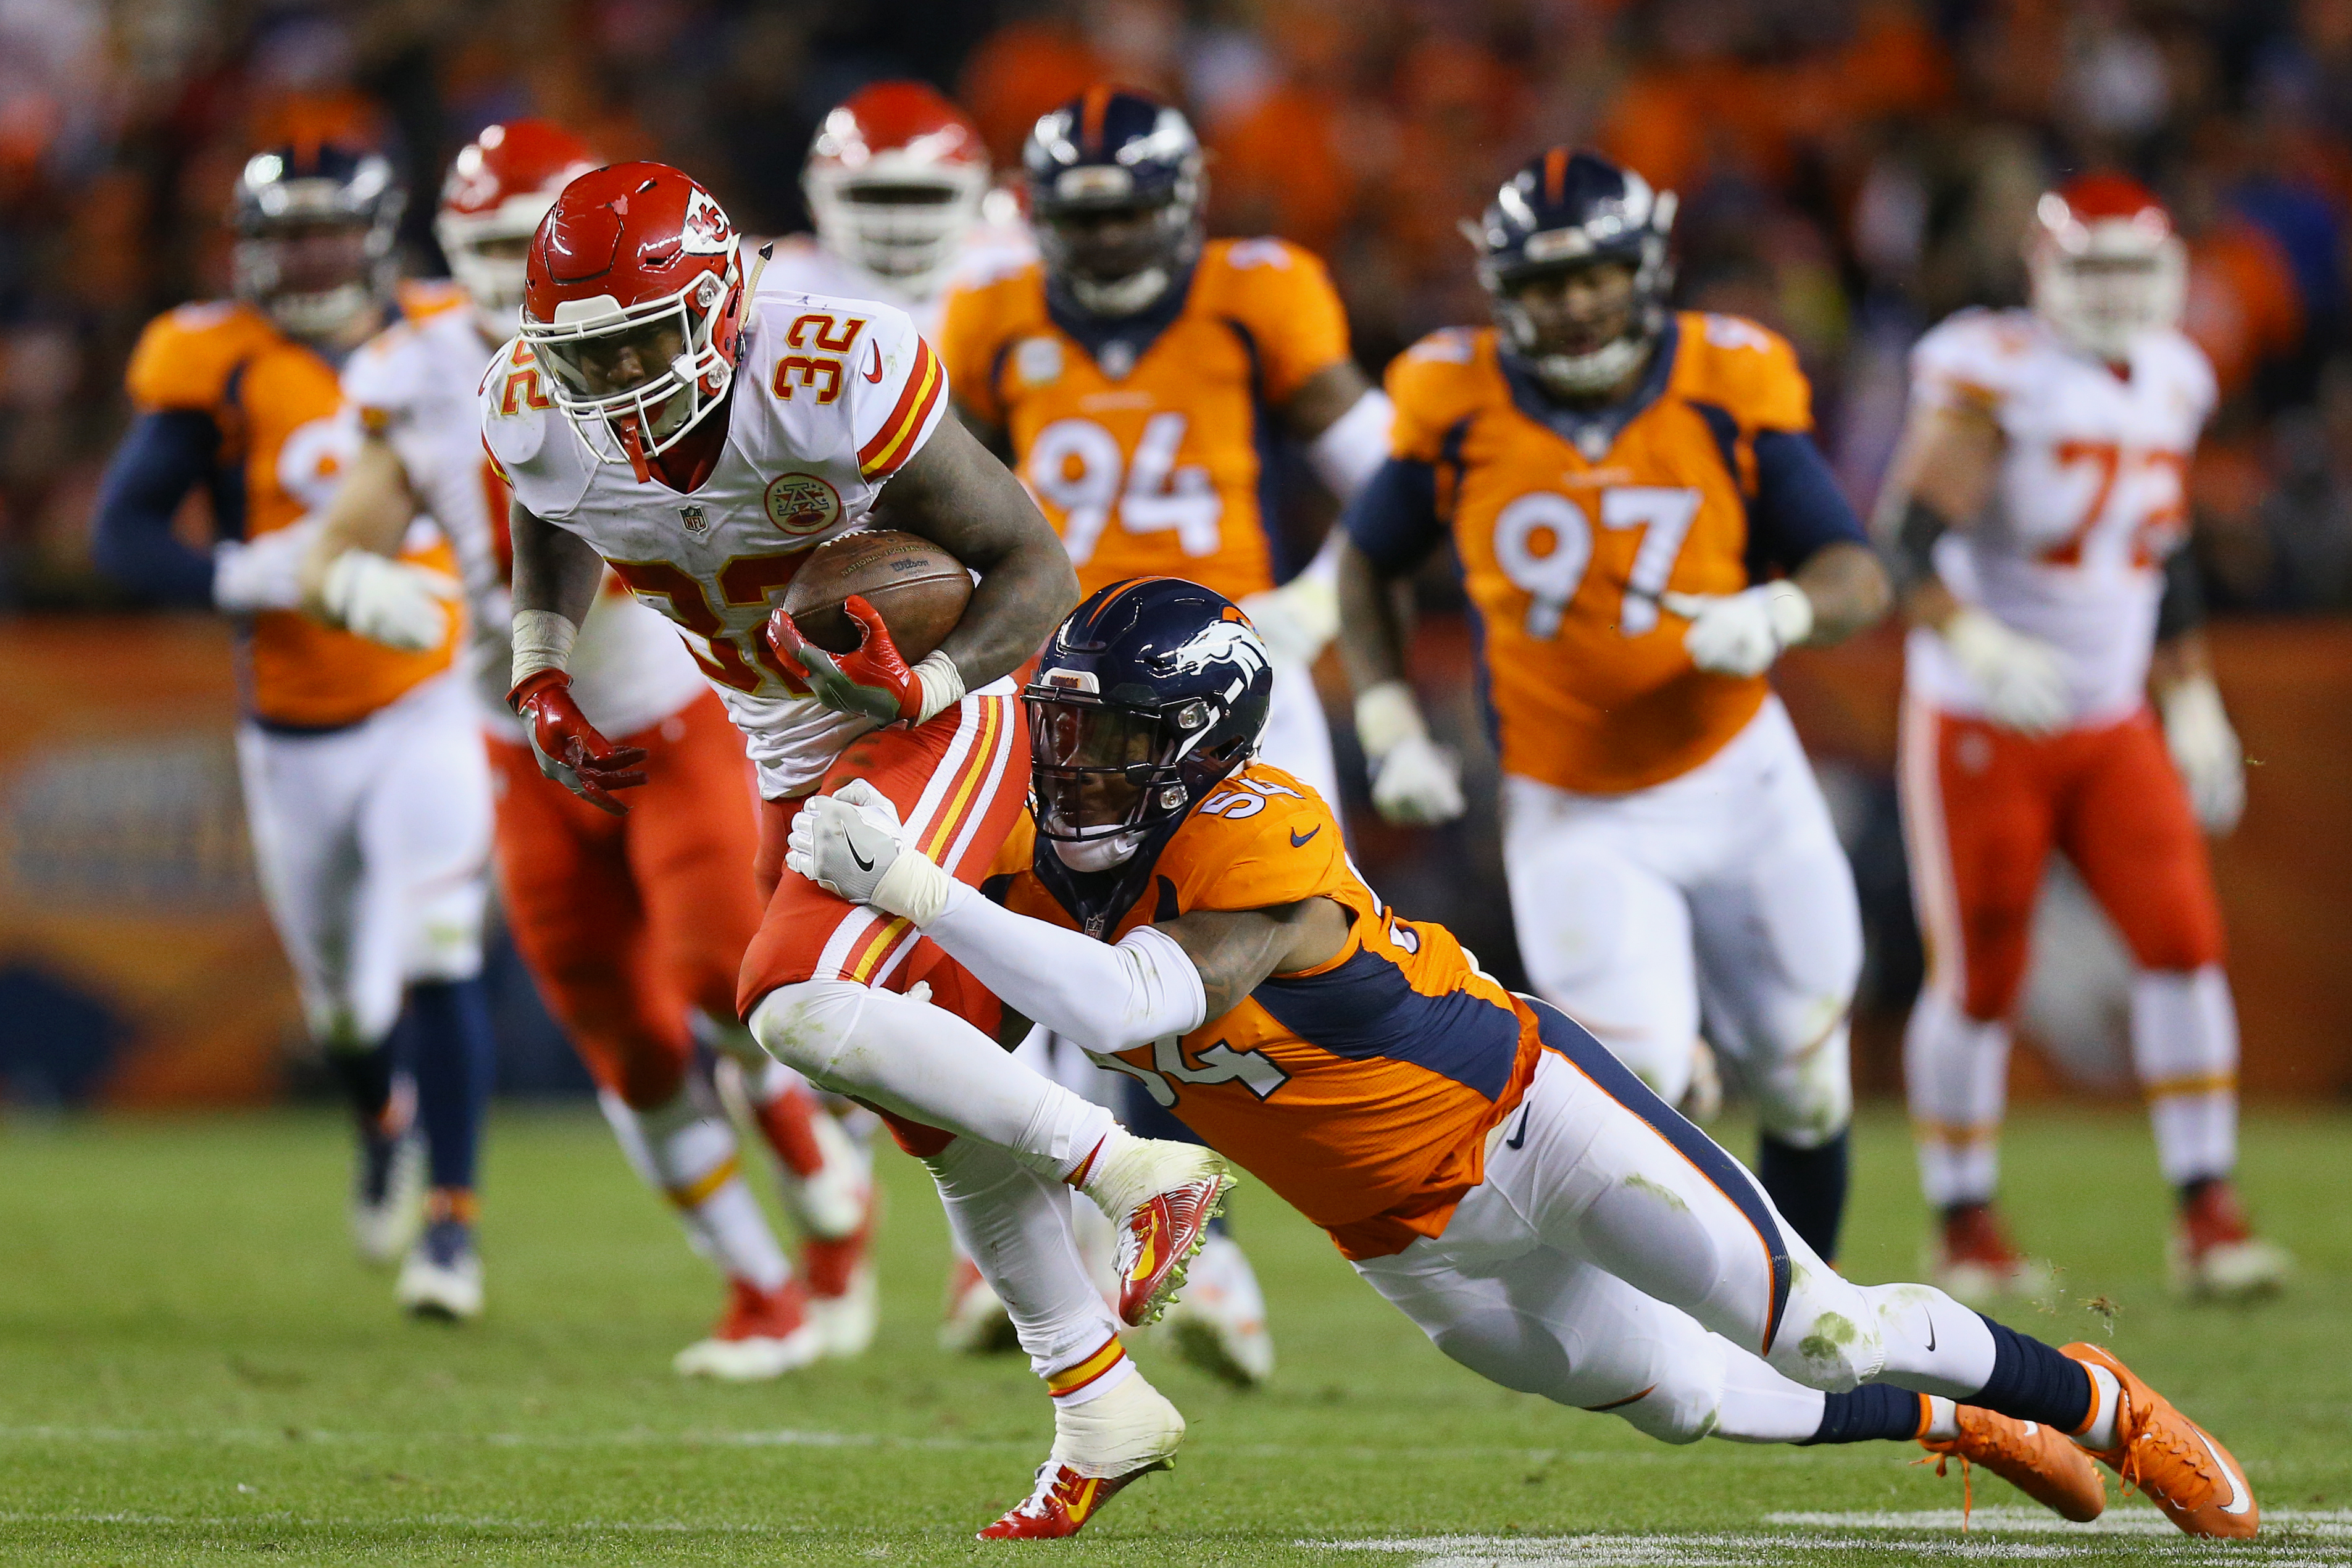 Running back Spencer Ware of the Kansas City Chiefs catches a pass and is tackled by inside linebacker Brandon Marshall of the Denver Broncos on Nov. 27, 2016 in Denver. (Photo by Justin Edmonds/Getty Images)